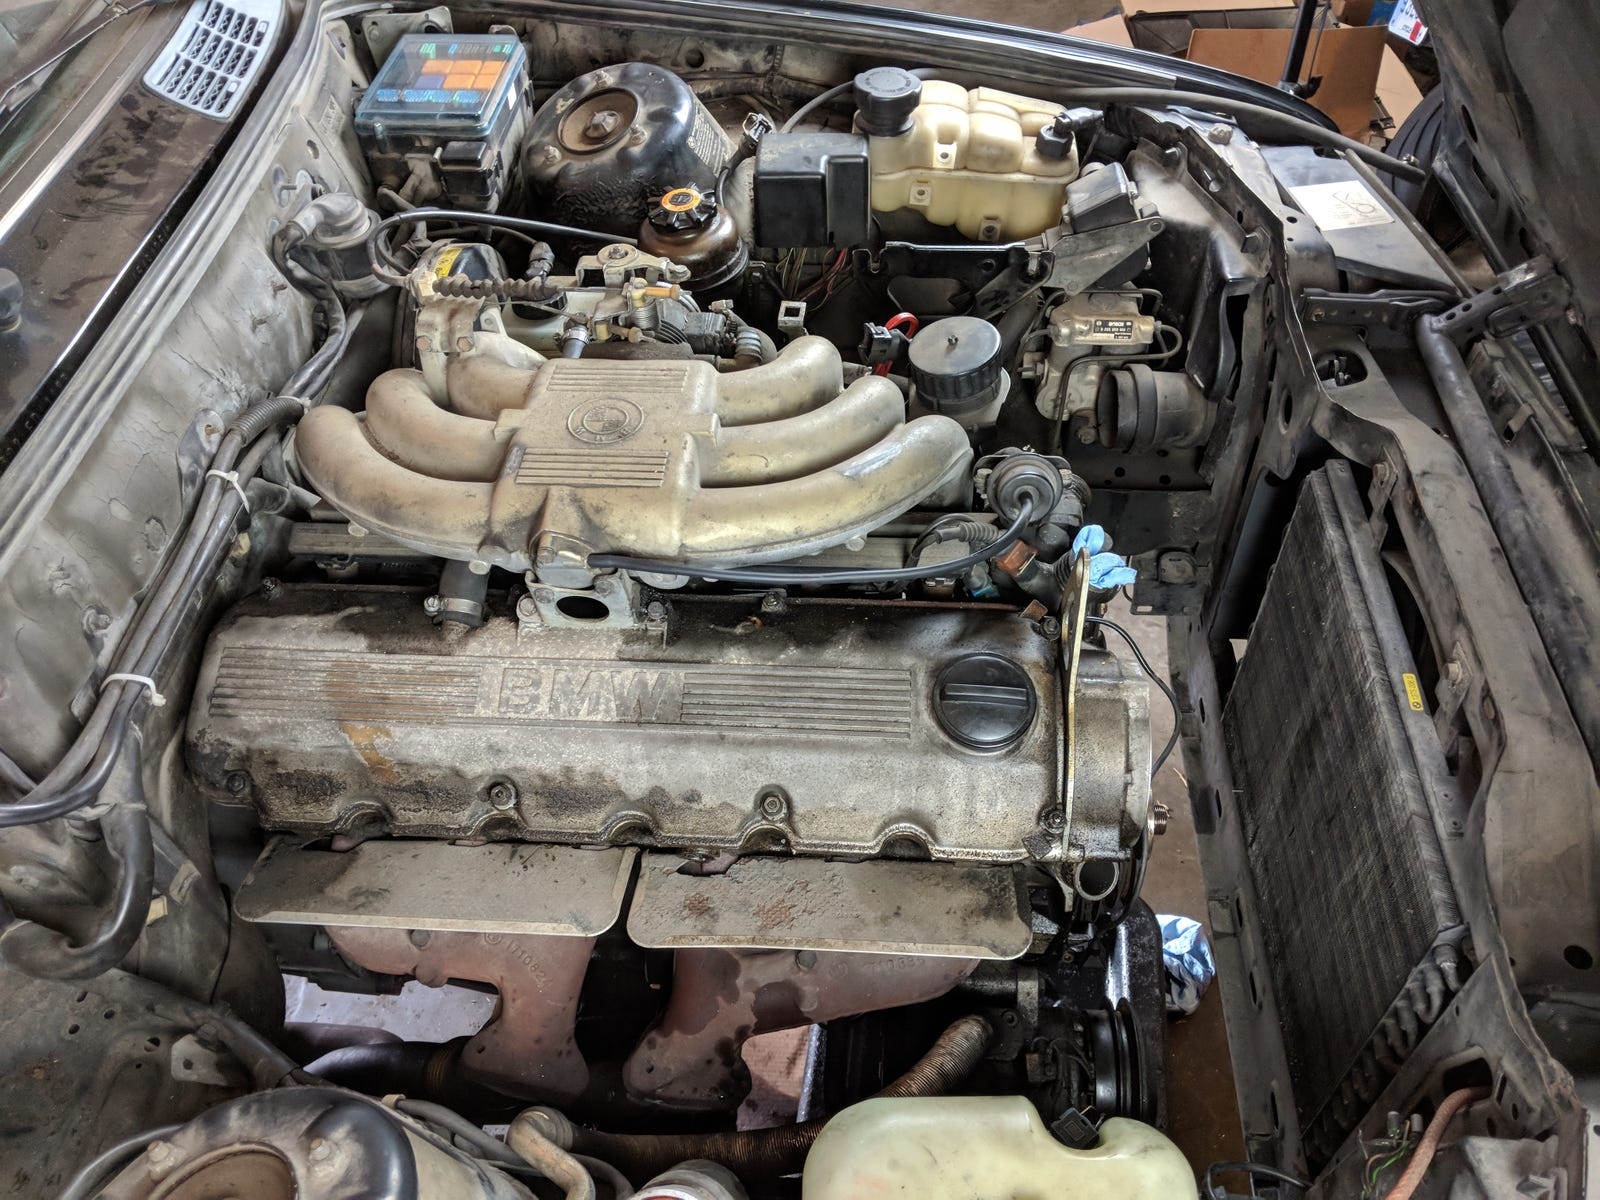 Accessory drives and coolant hoses removed.